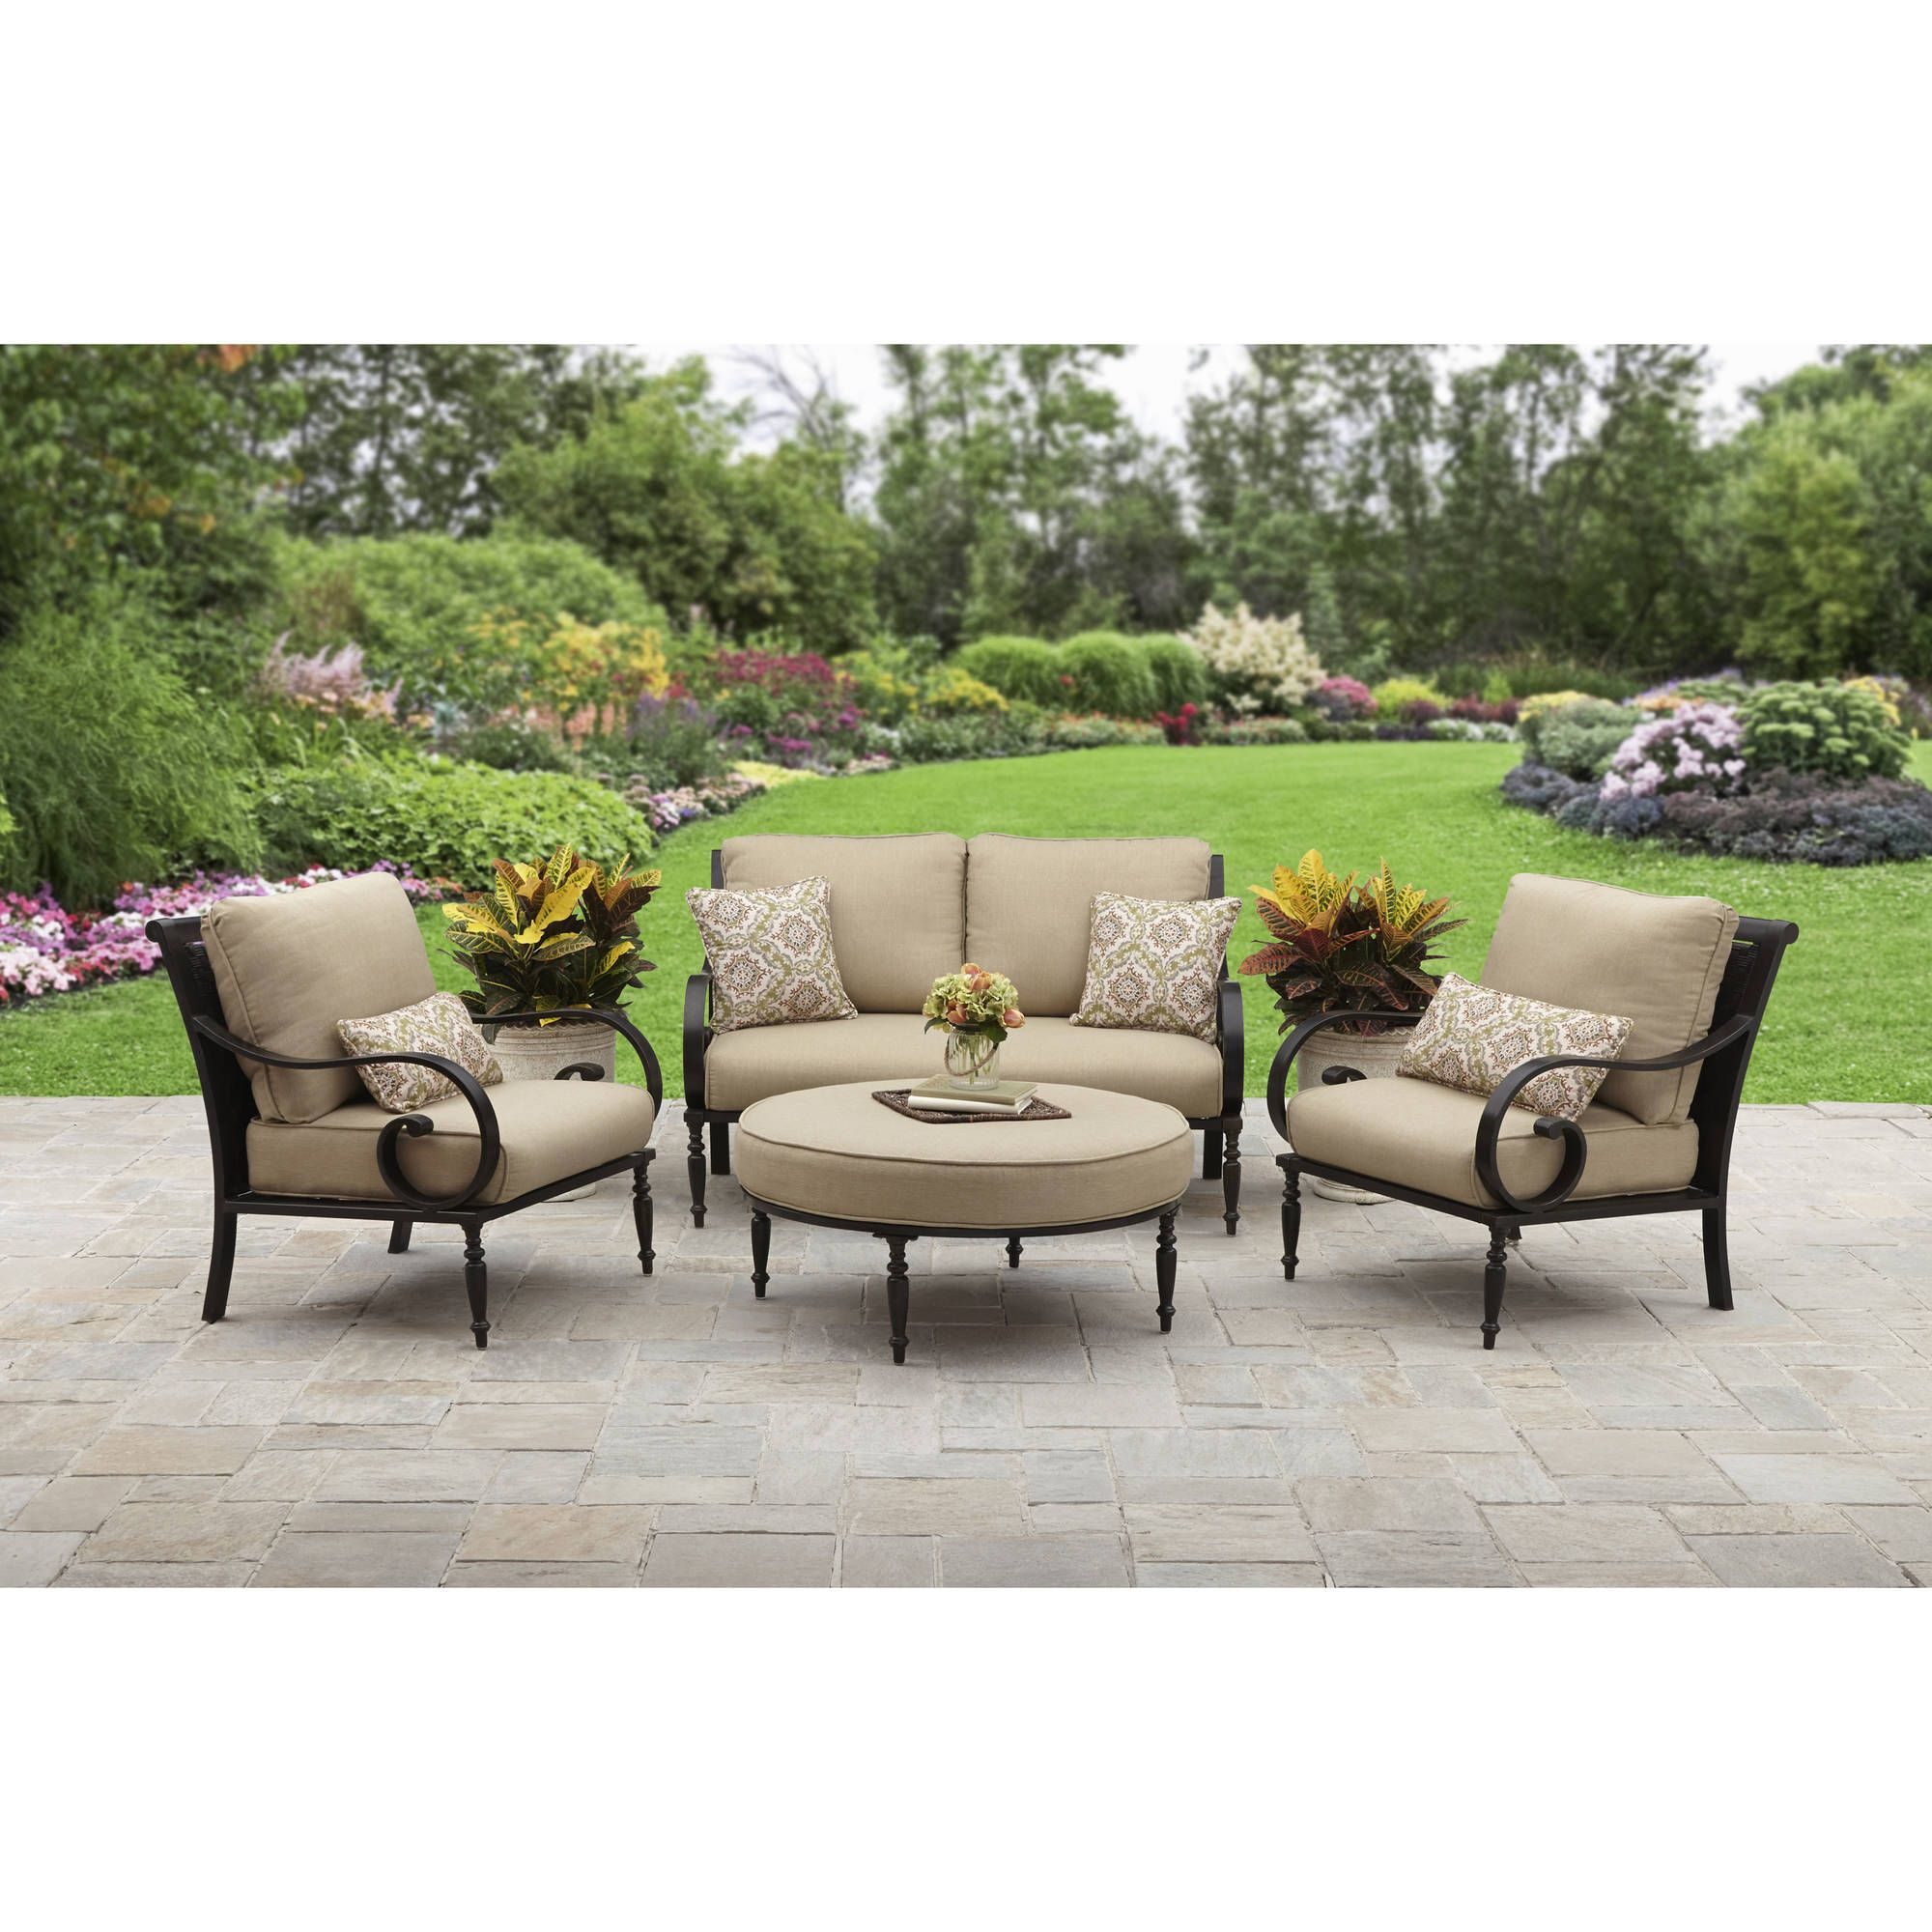 replacement cushions for living room sofa 2 furniture cheap prices nice new better homes and gardens patio 54 with additional home decorating ideas